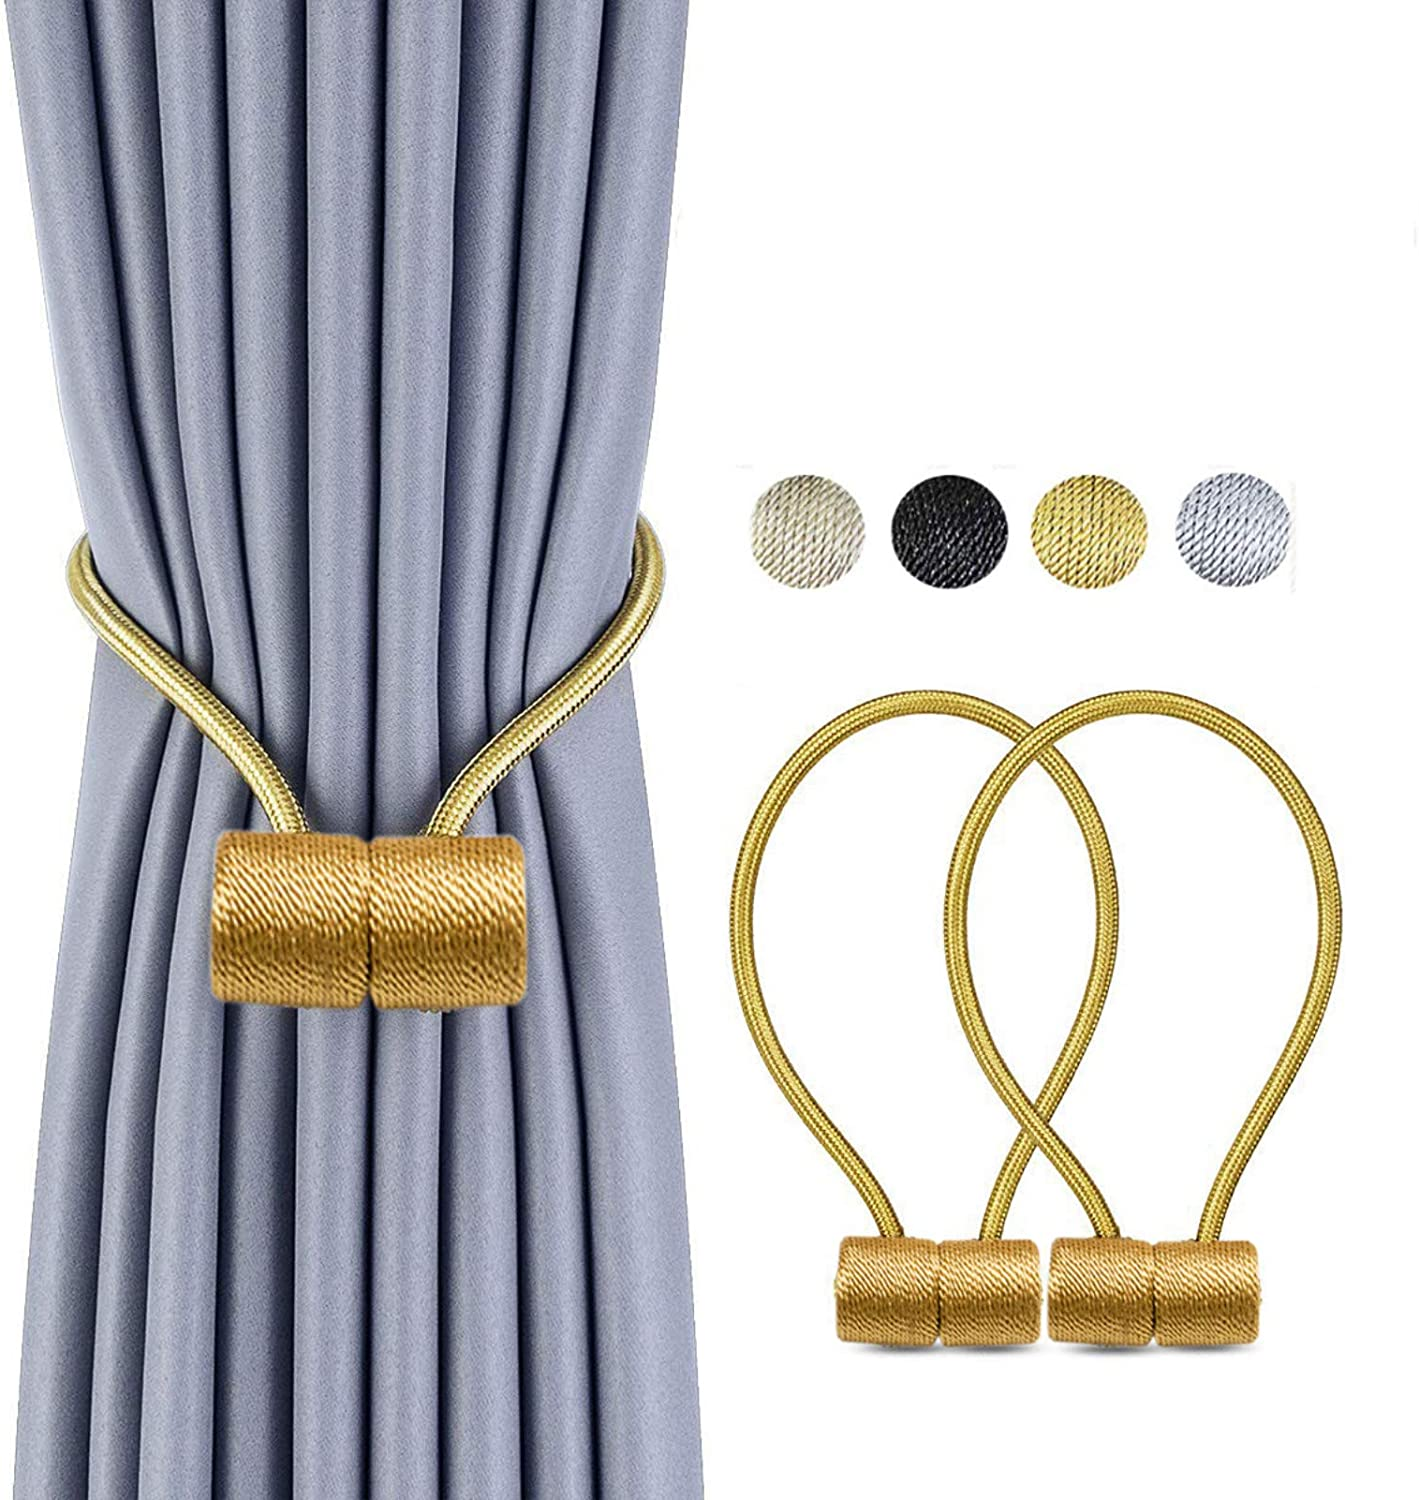 Home Decor Window Magnetic Curtain Buckle Holder Tieback Tie Backs Drapes Clip